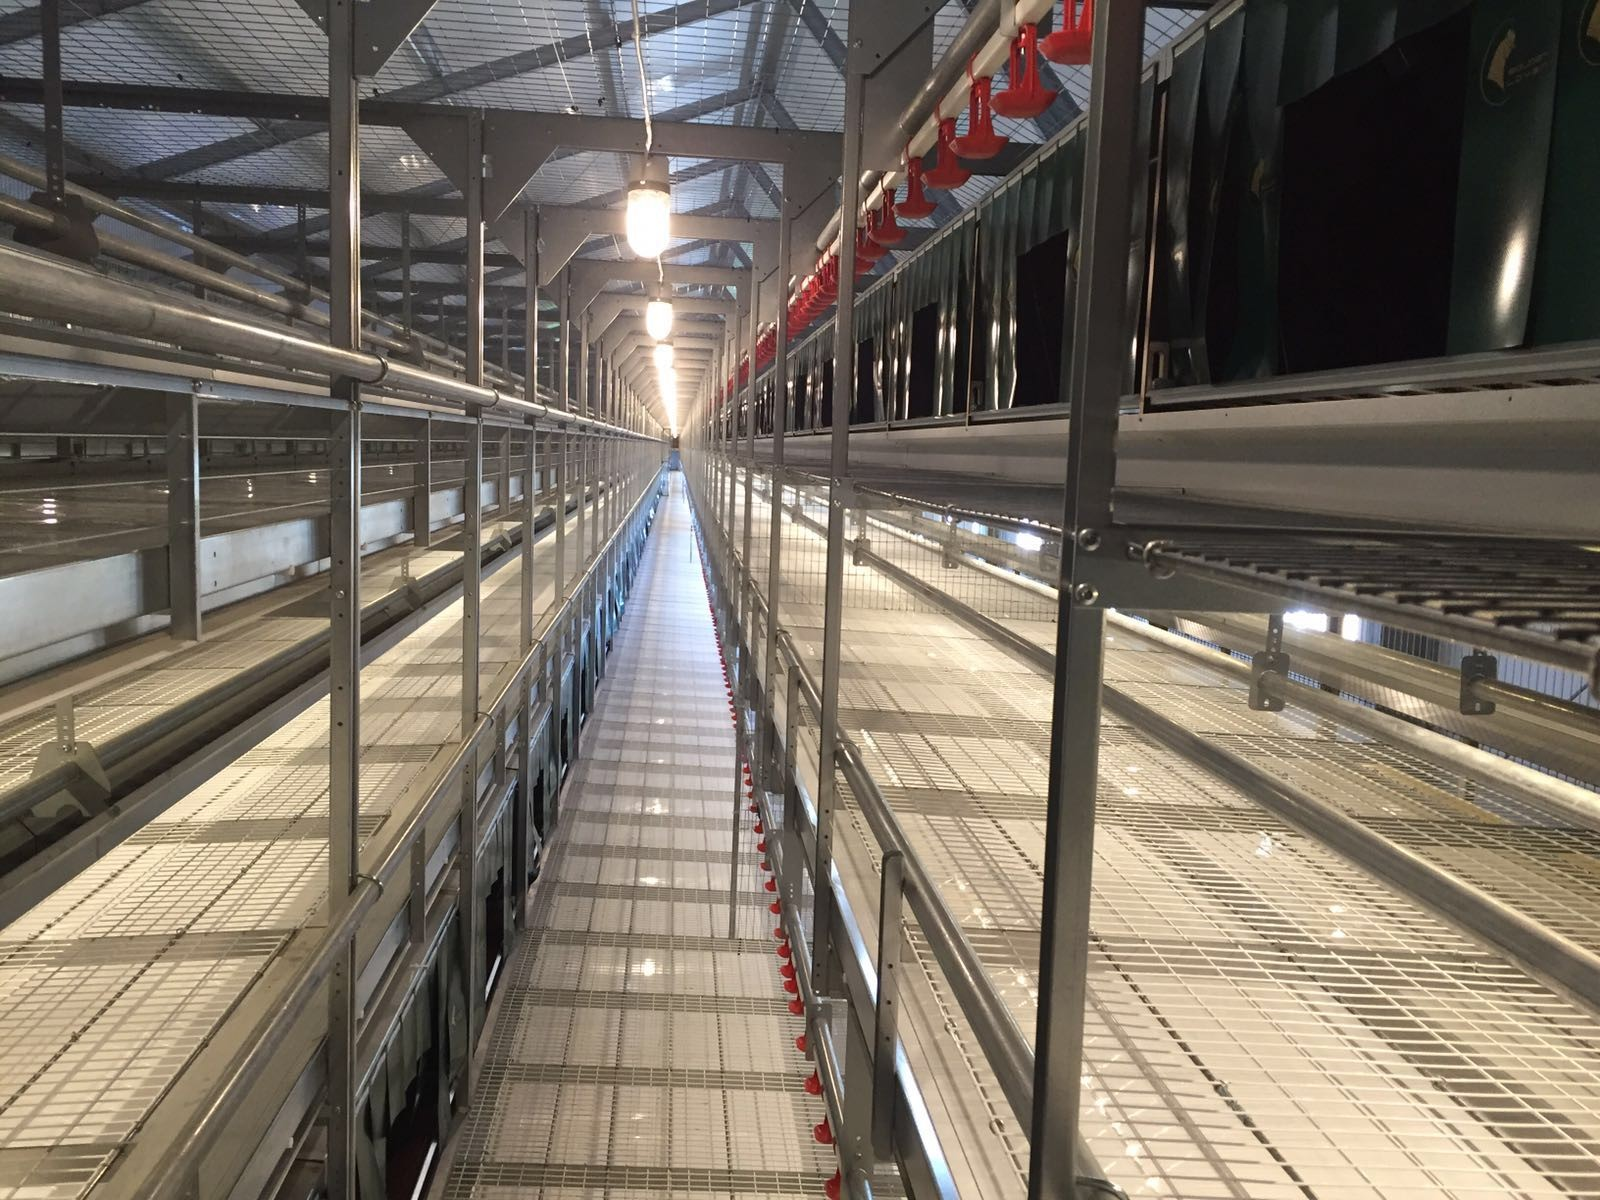 FIT Farm Innovation Team - Golden Layer NATURE_1 cage free aviary system - move in ahead 3